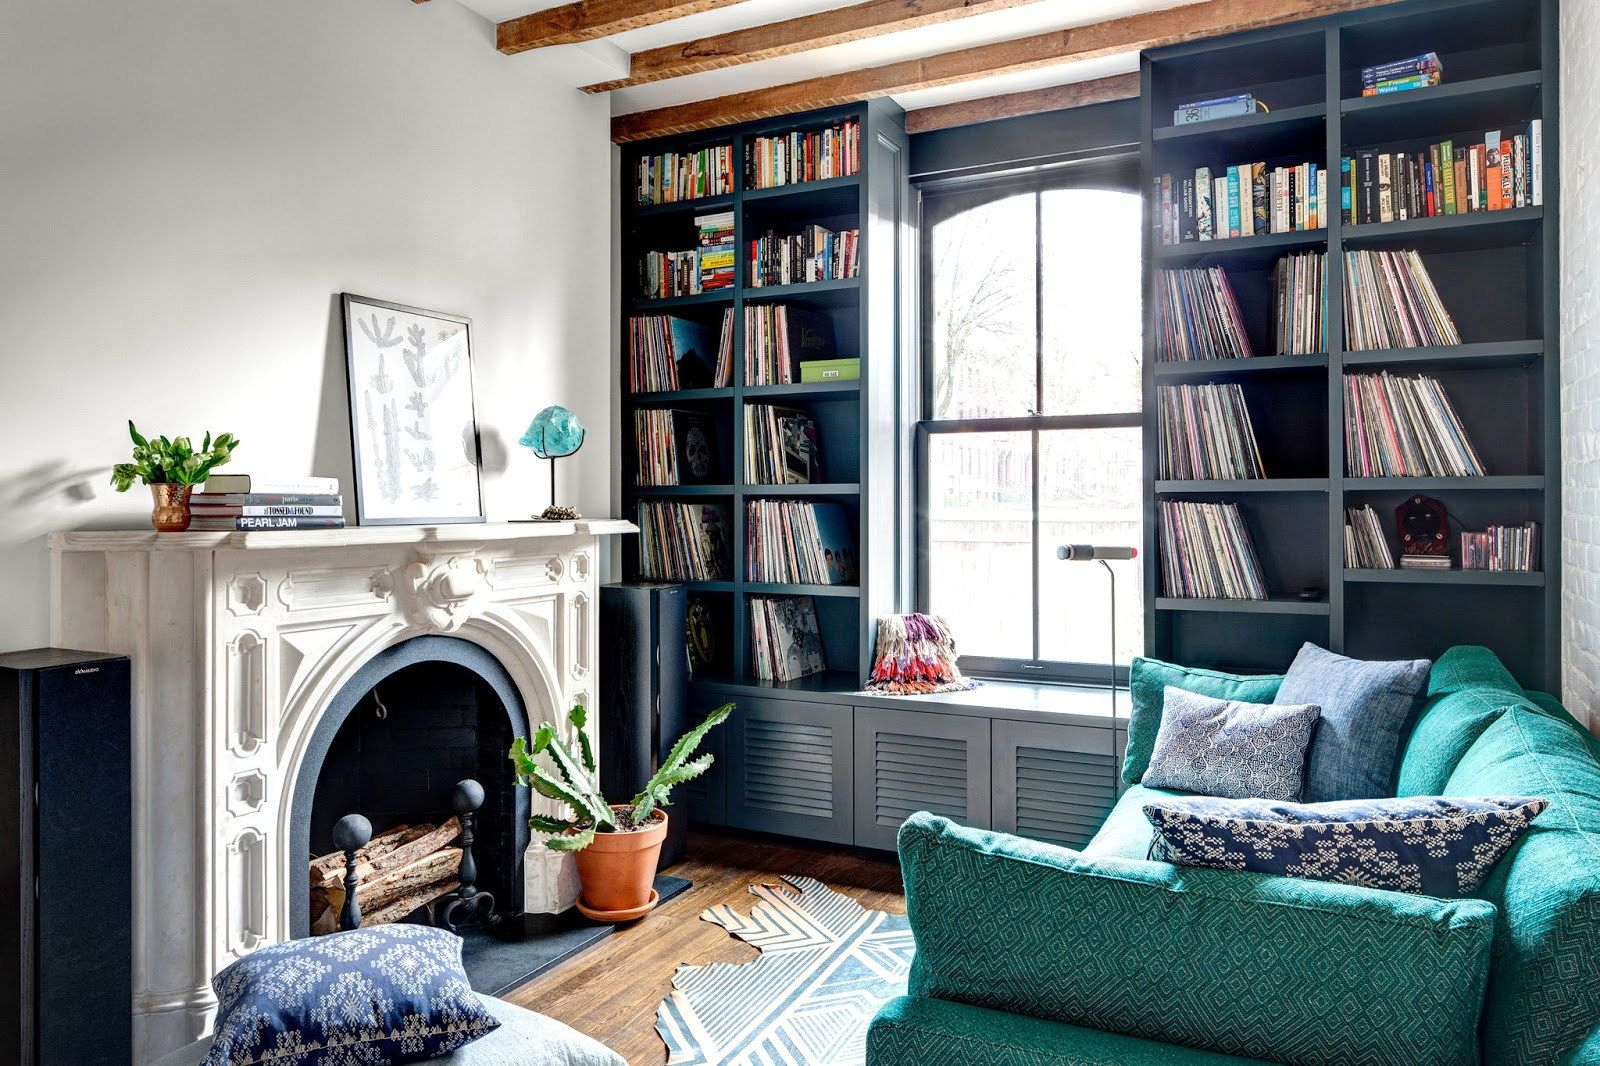 BROOKLYN TOWNHOUSE REMODEL - TIME DESIGN BLEND | Small ...